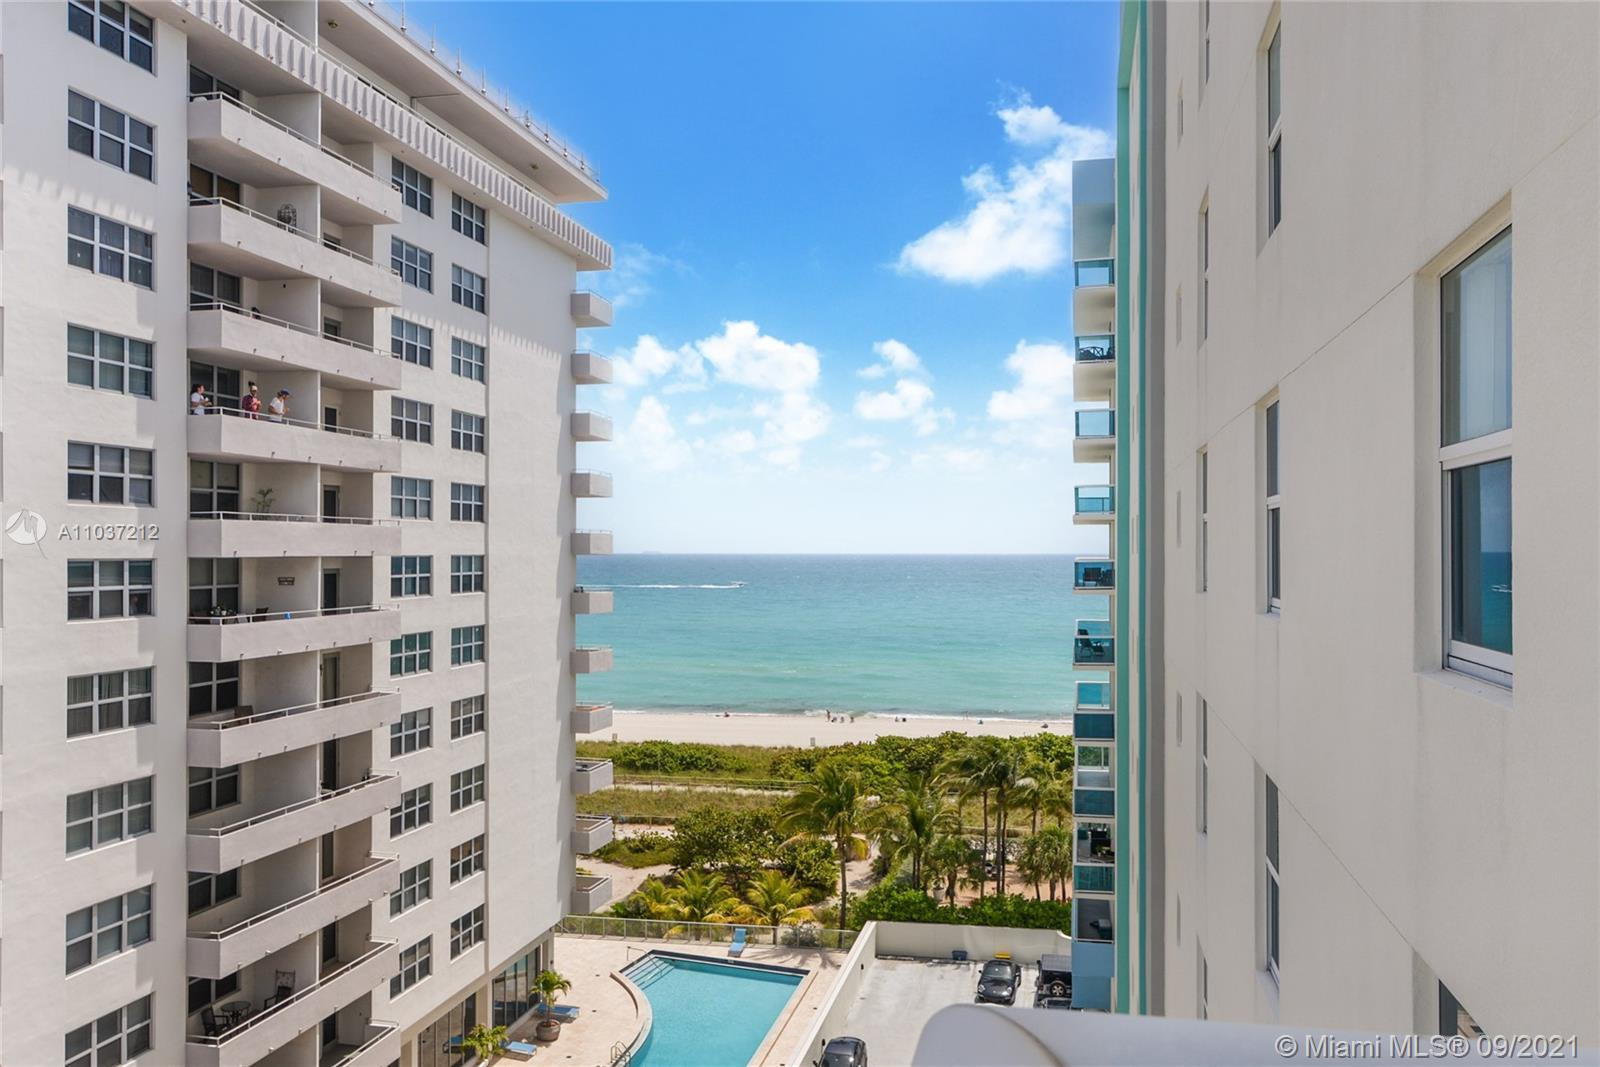 OCEAN FRONT!! Exclusive BOUTIQUE BLDG NW corner unit with 2 beds, 2 baths rarely on the market. Ocea